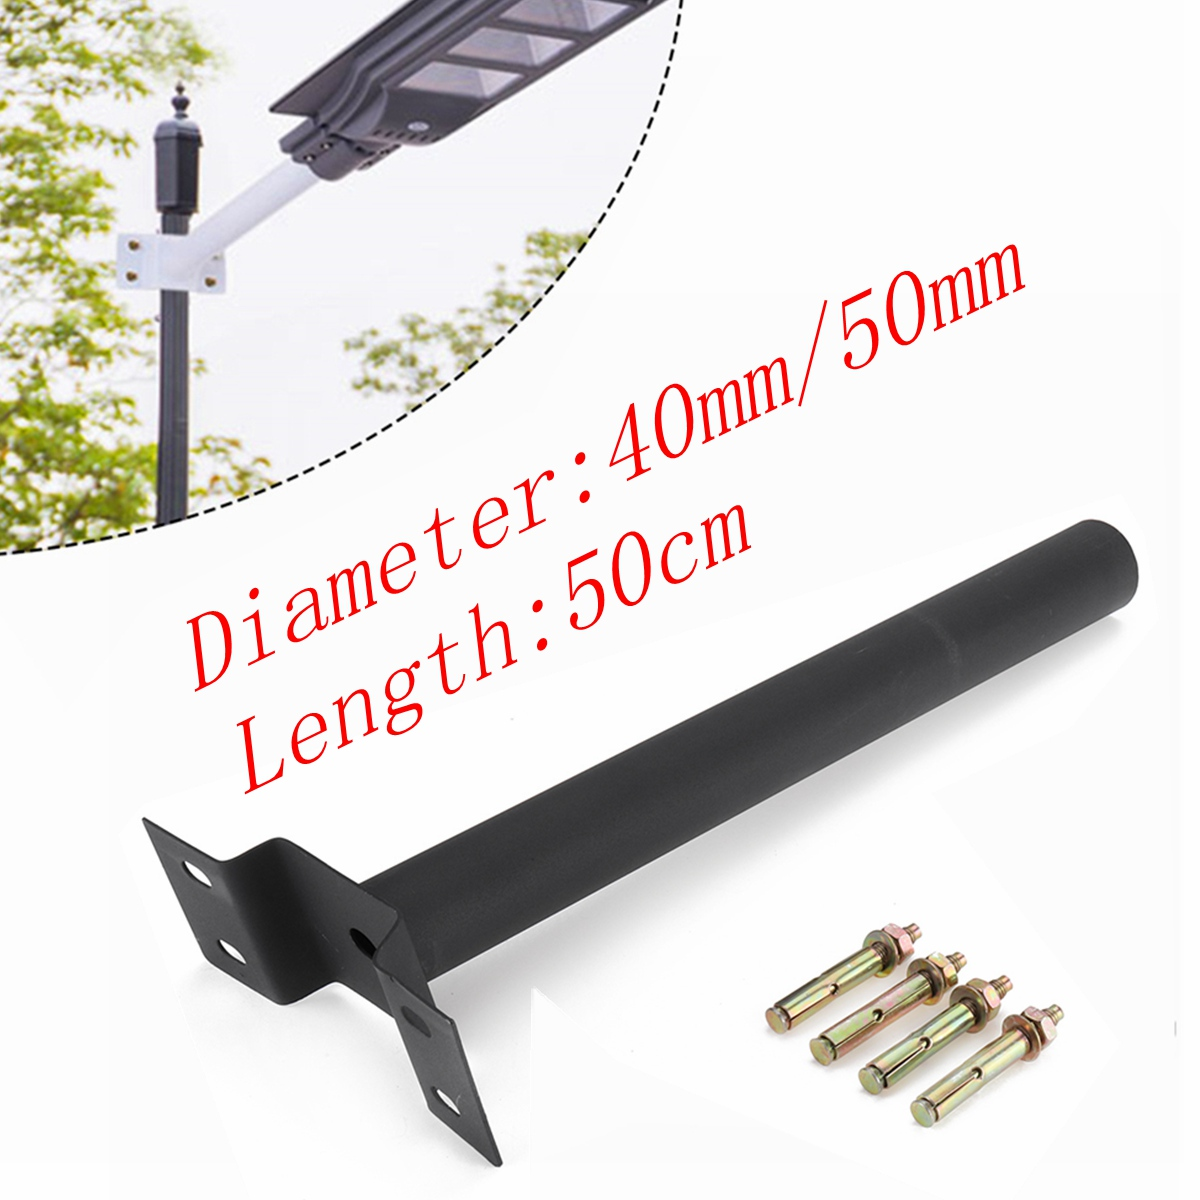 50CM LED Solar Street Light Support Bracket For Solar Street Light Pole 50mm/40mm Diameter For Garden Yard Wall Light